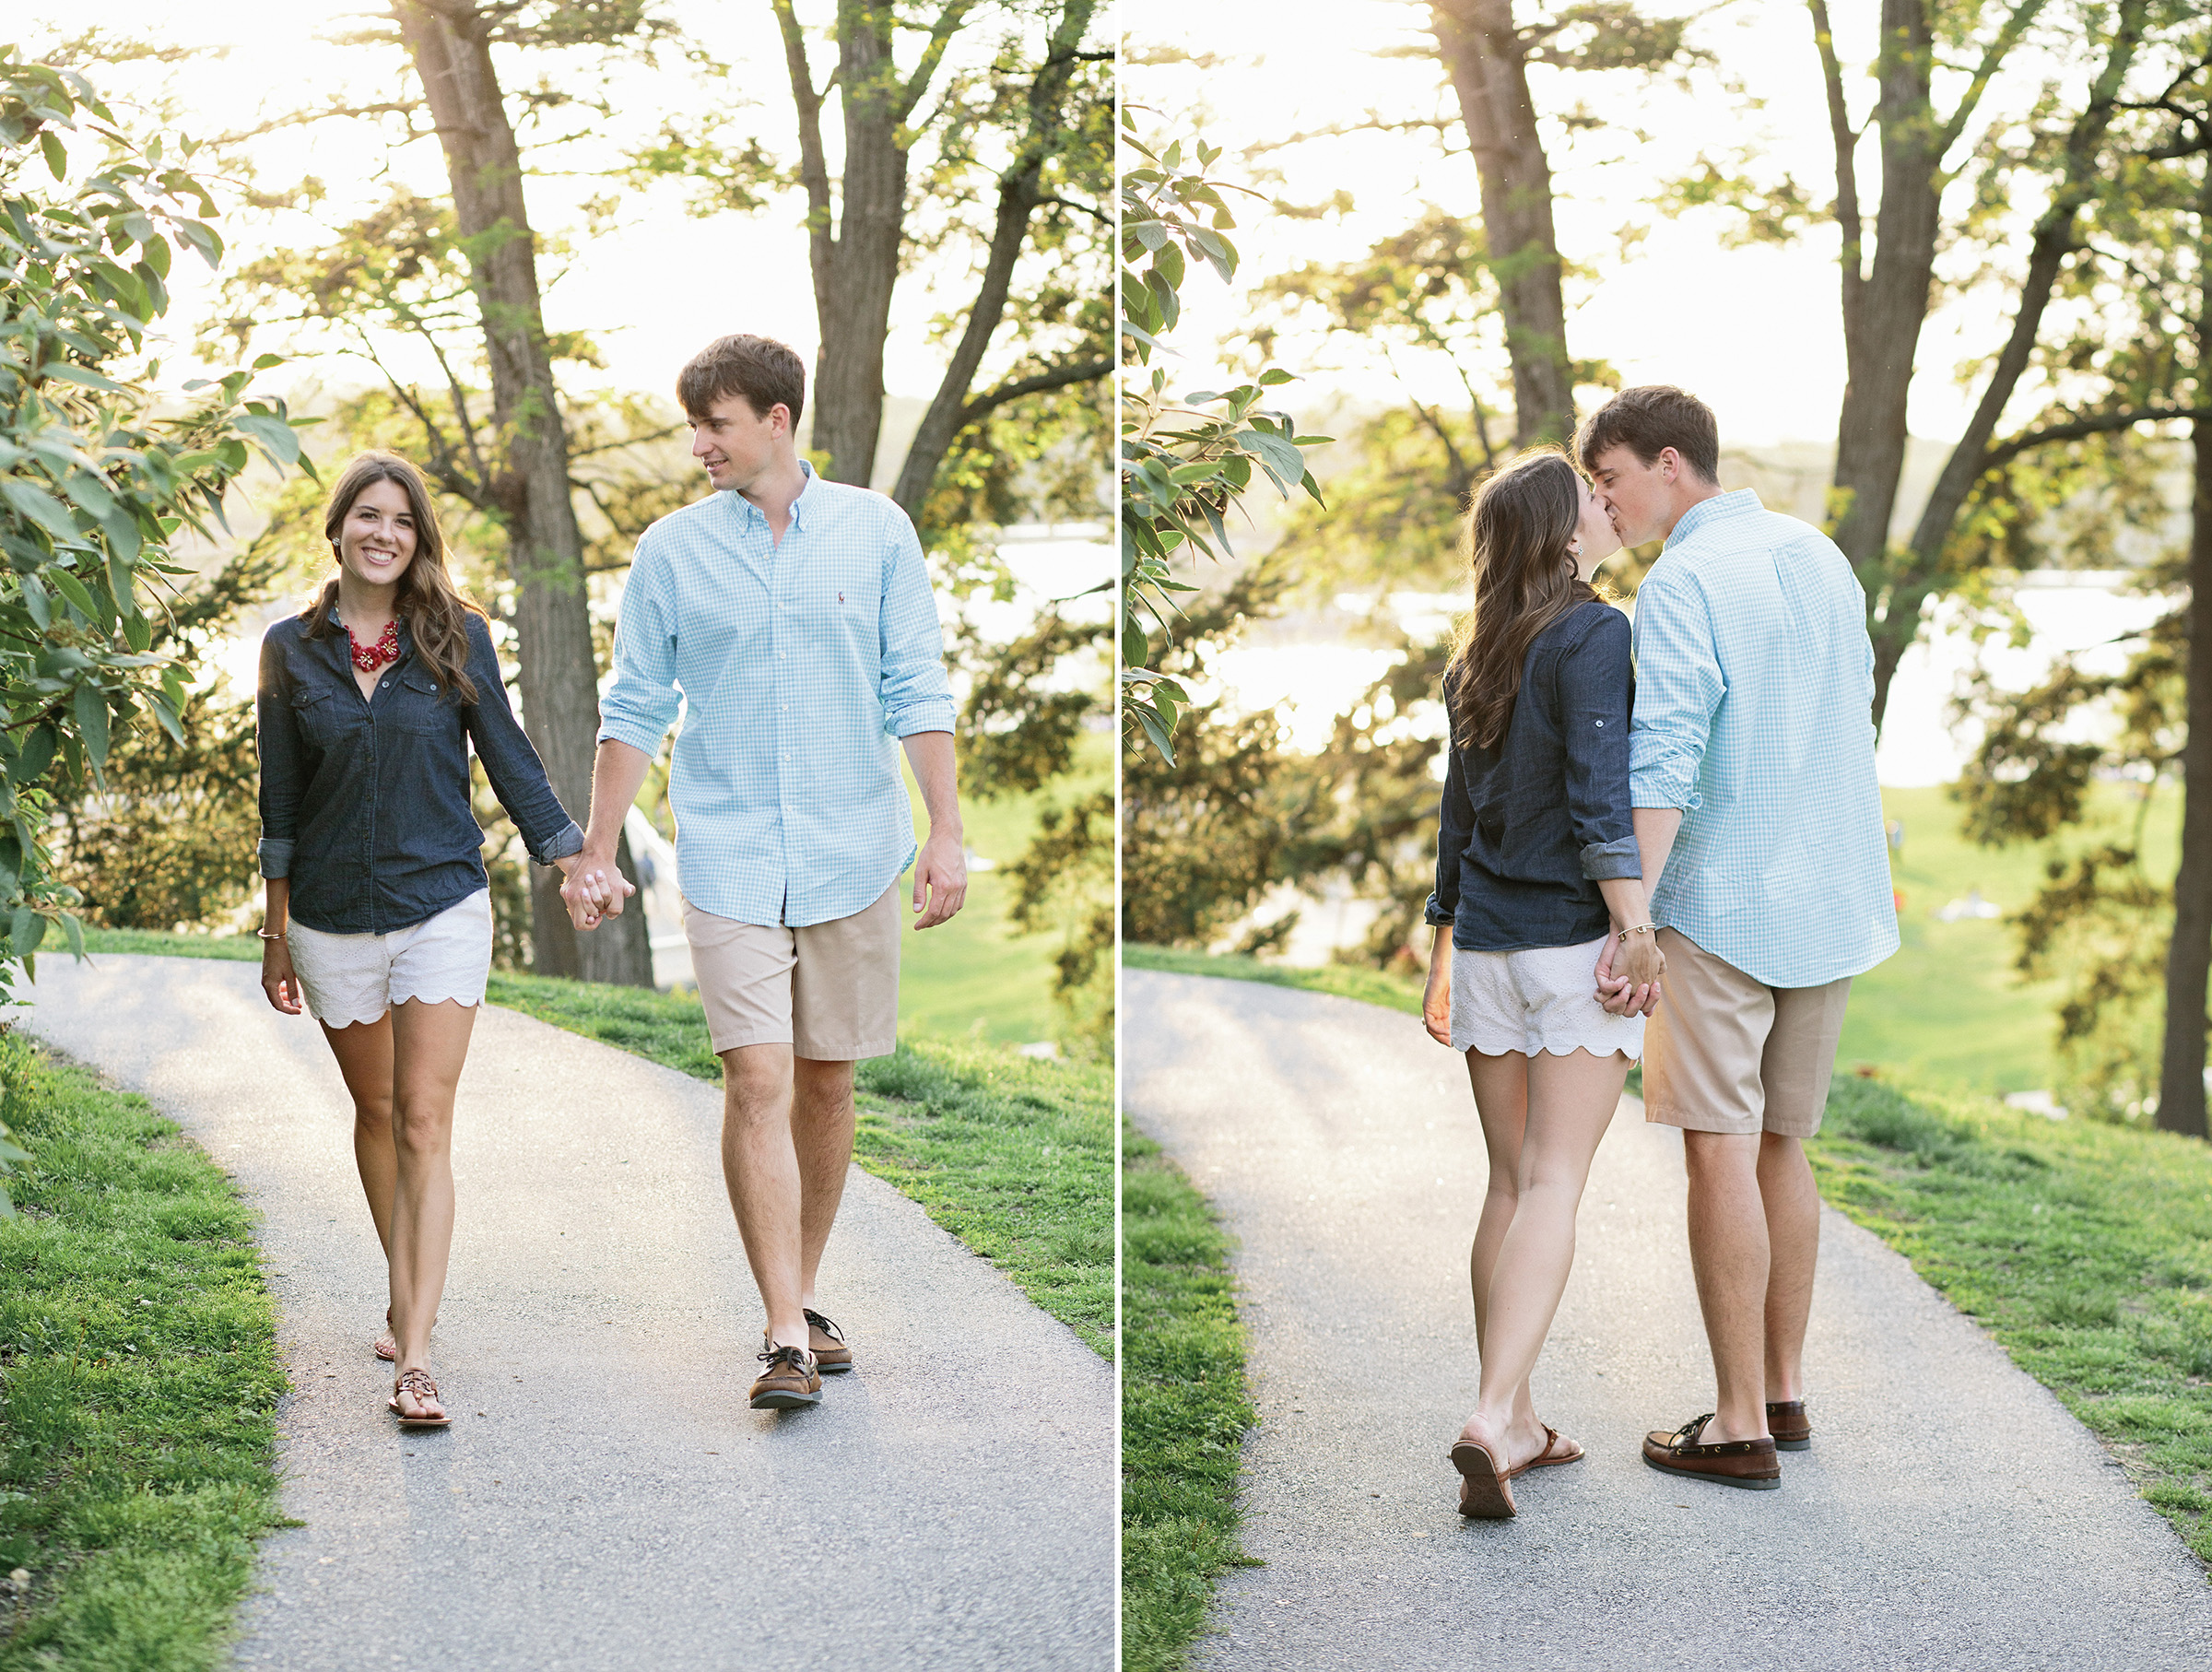 Brendan and Lindsay's engagement session was photographed on a mix of film and digital on location in Philadelphia's Boat House Row by Hudson Nichols photography.